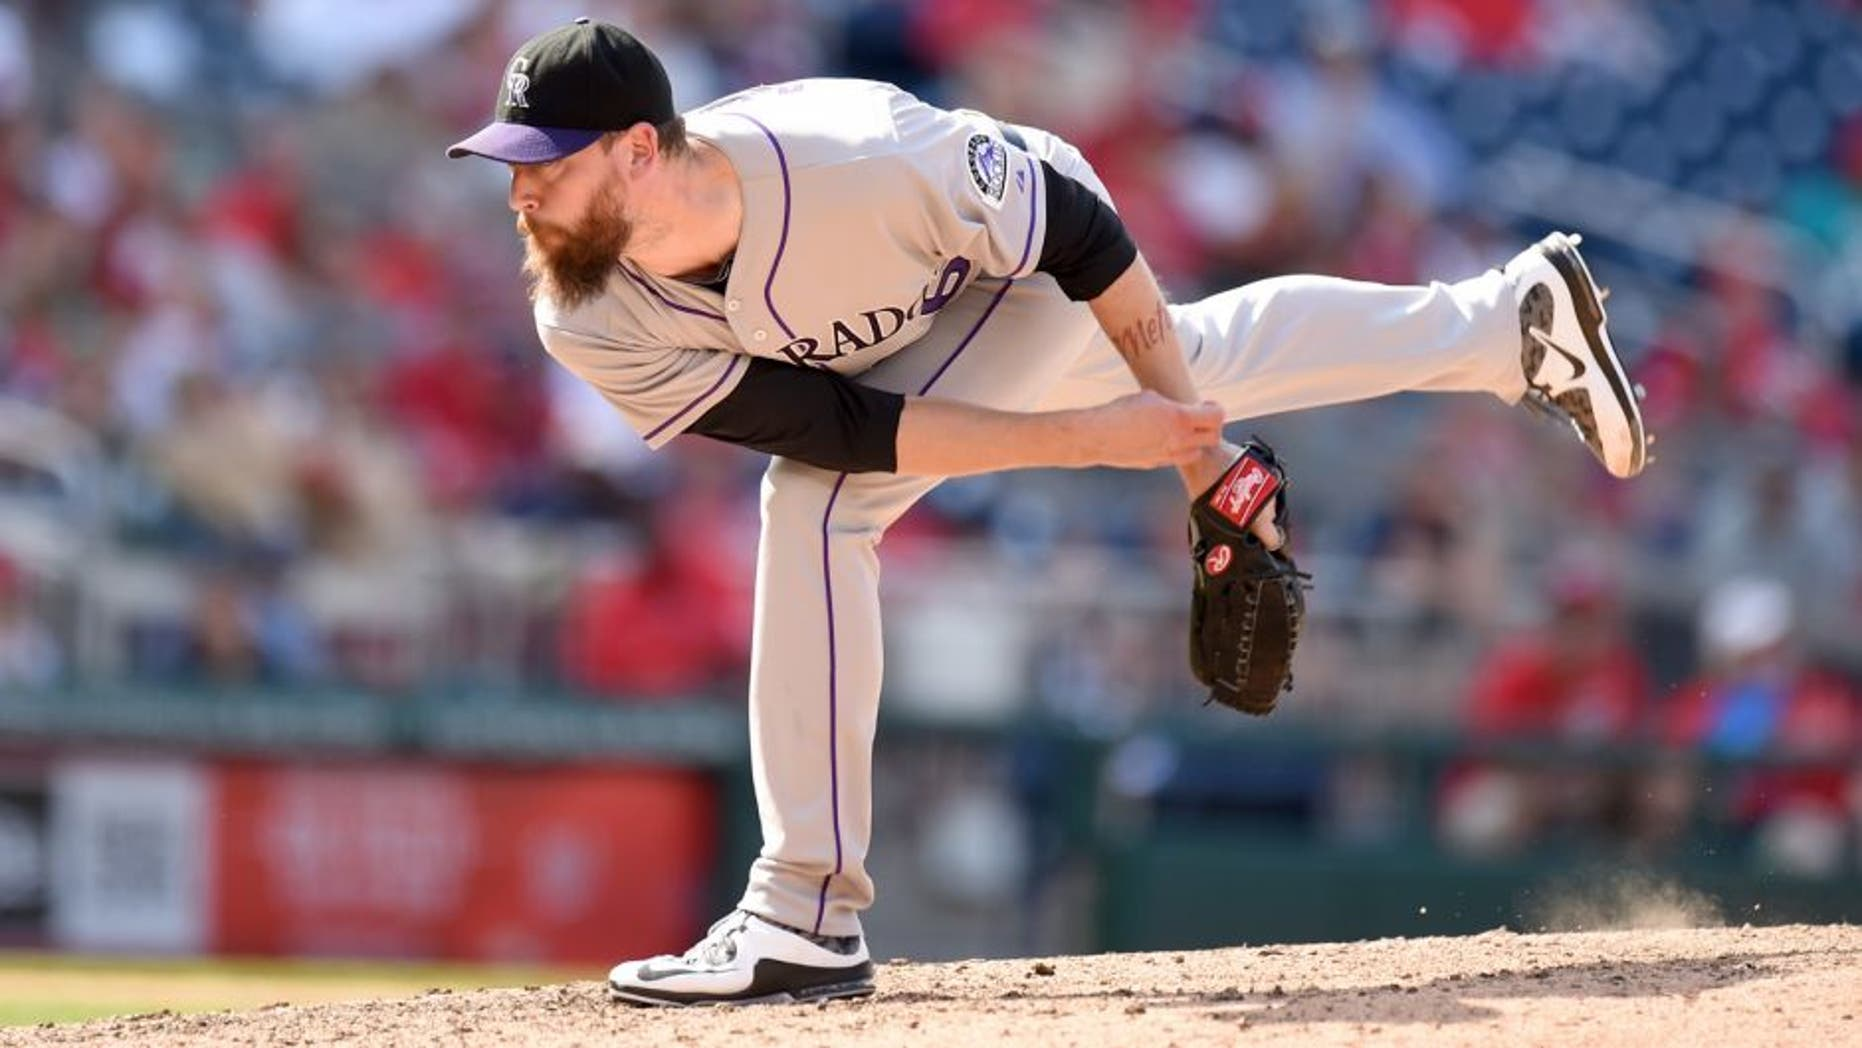 WASHINGTON, DC - AUGUST 09: John Axford #66 of the Colorado Rockies pitches in the eighth inning and get credit for the win during a baseball game against the Washington Nationals at Nationals Park on August 9, 2015 in Washington, DC. The Rockies won 6-4. (Photo by Mitchell Layton/Getty Images)